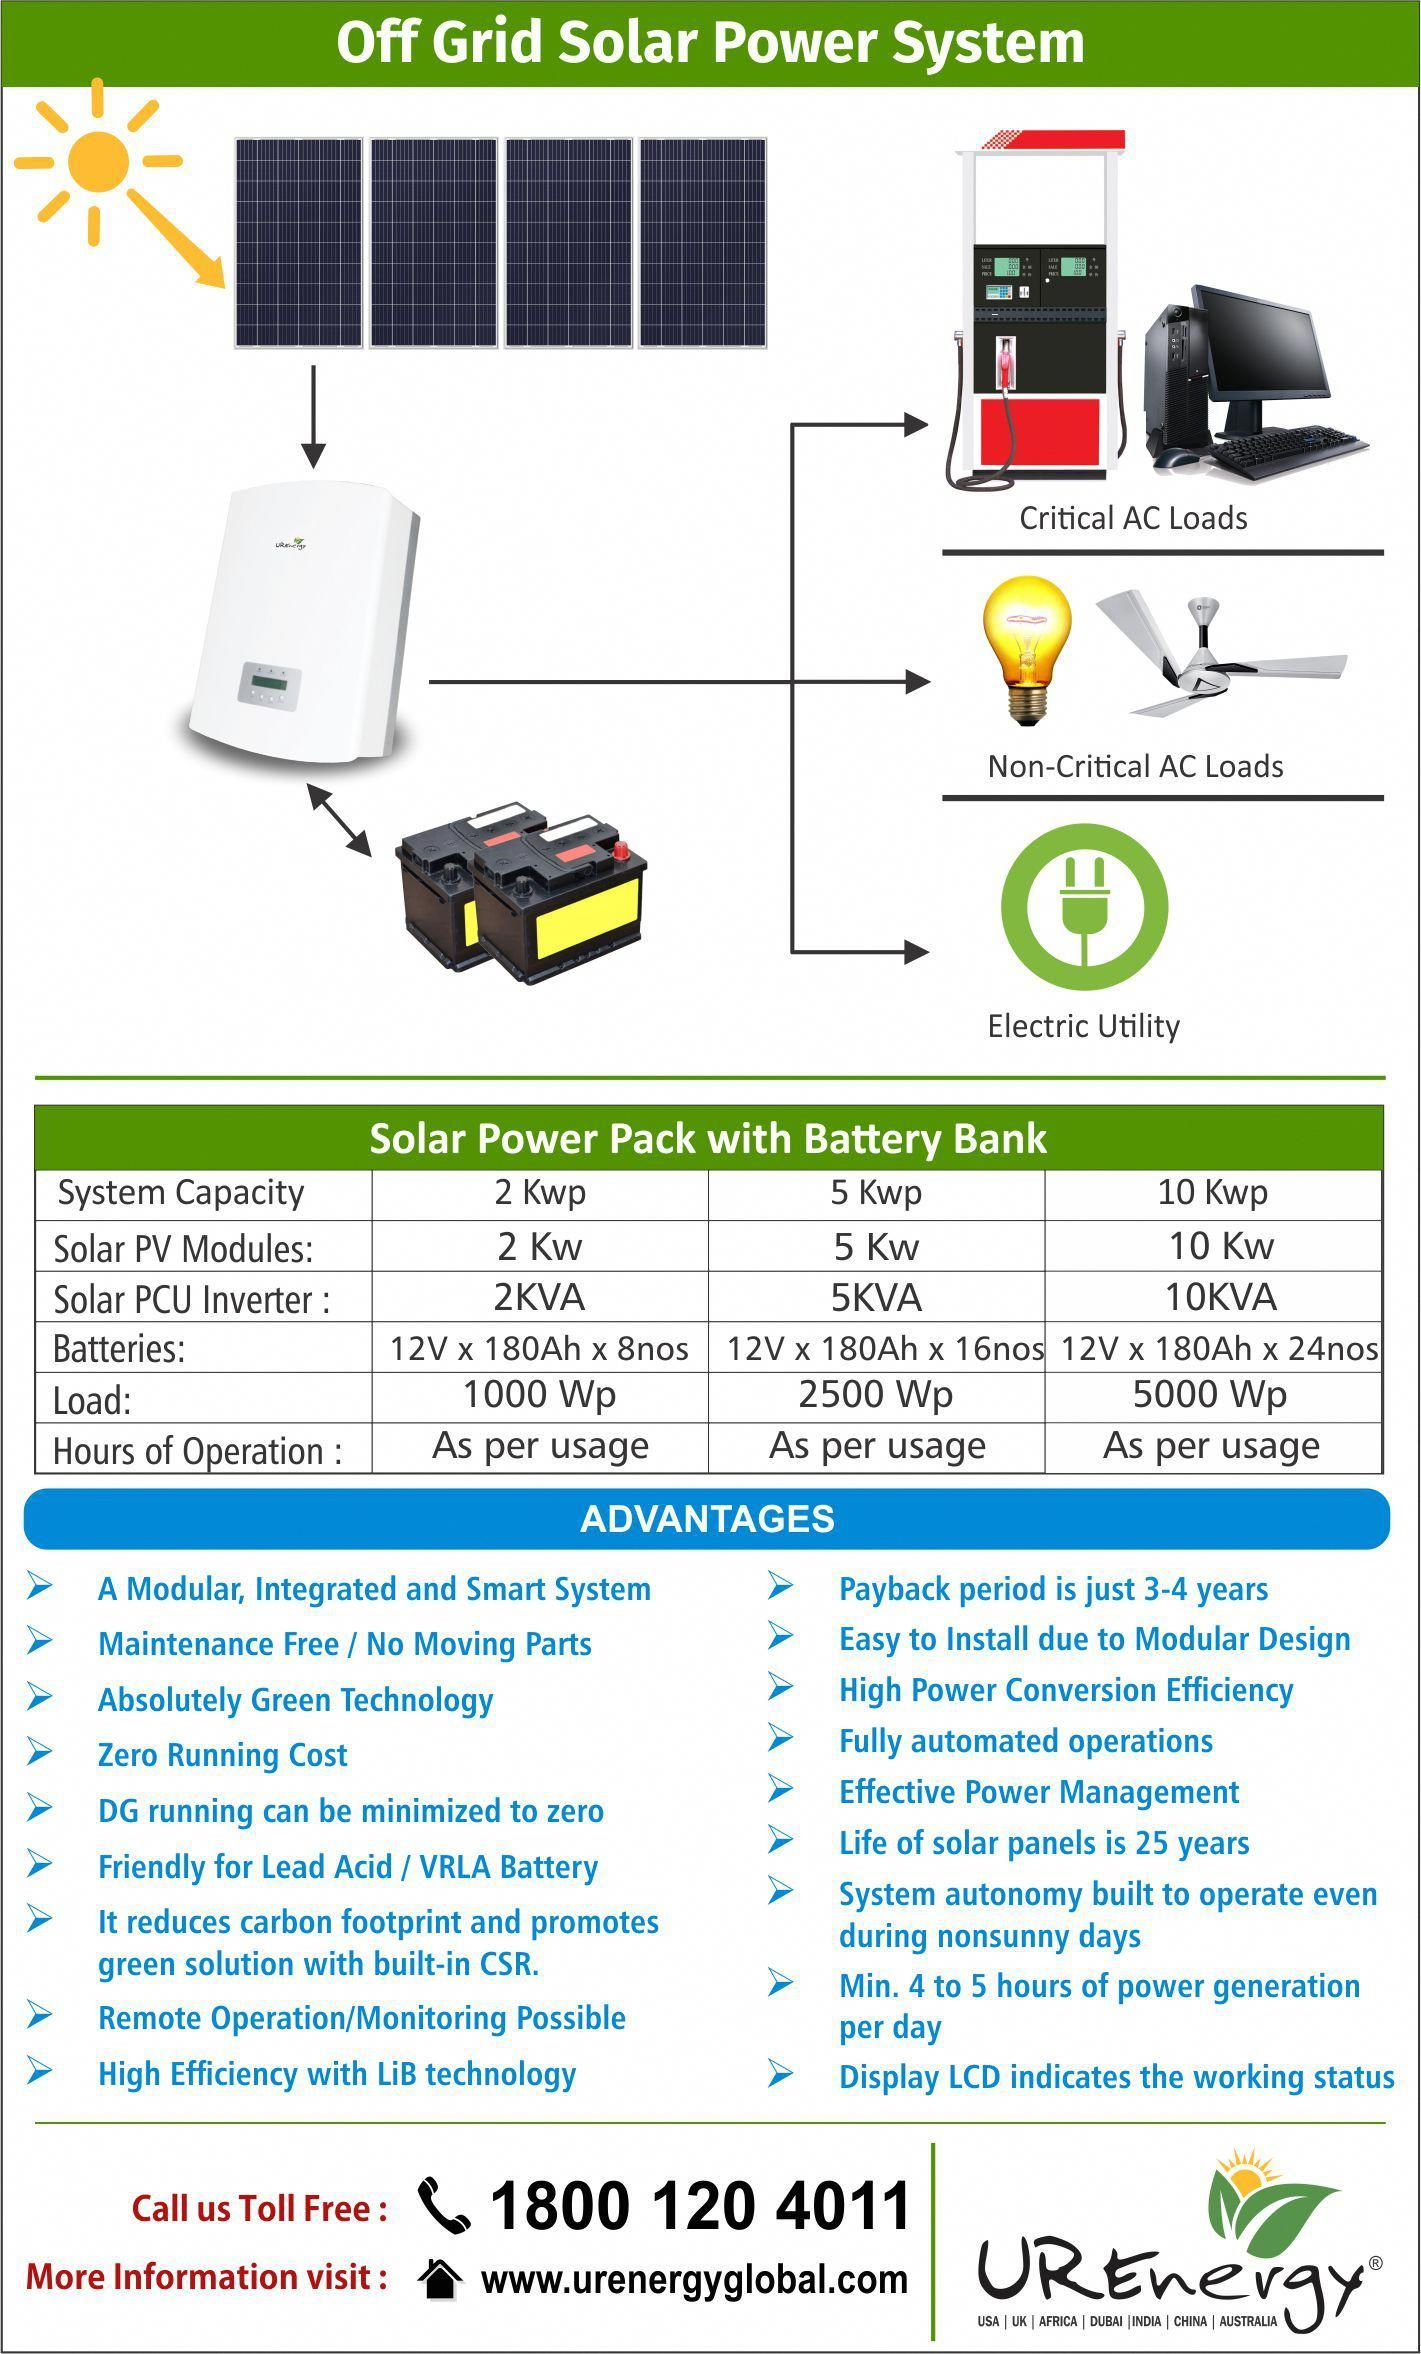 Advantages Of Off Grid Solar Power System Solar Power Pack With Battery Bank For Mor Best Solar Panels Solar Panel Installation Solar Power System